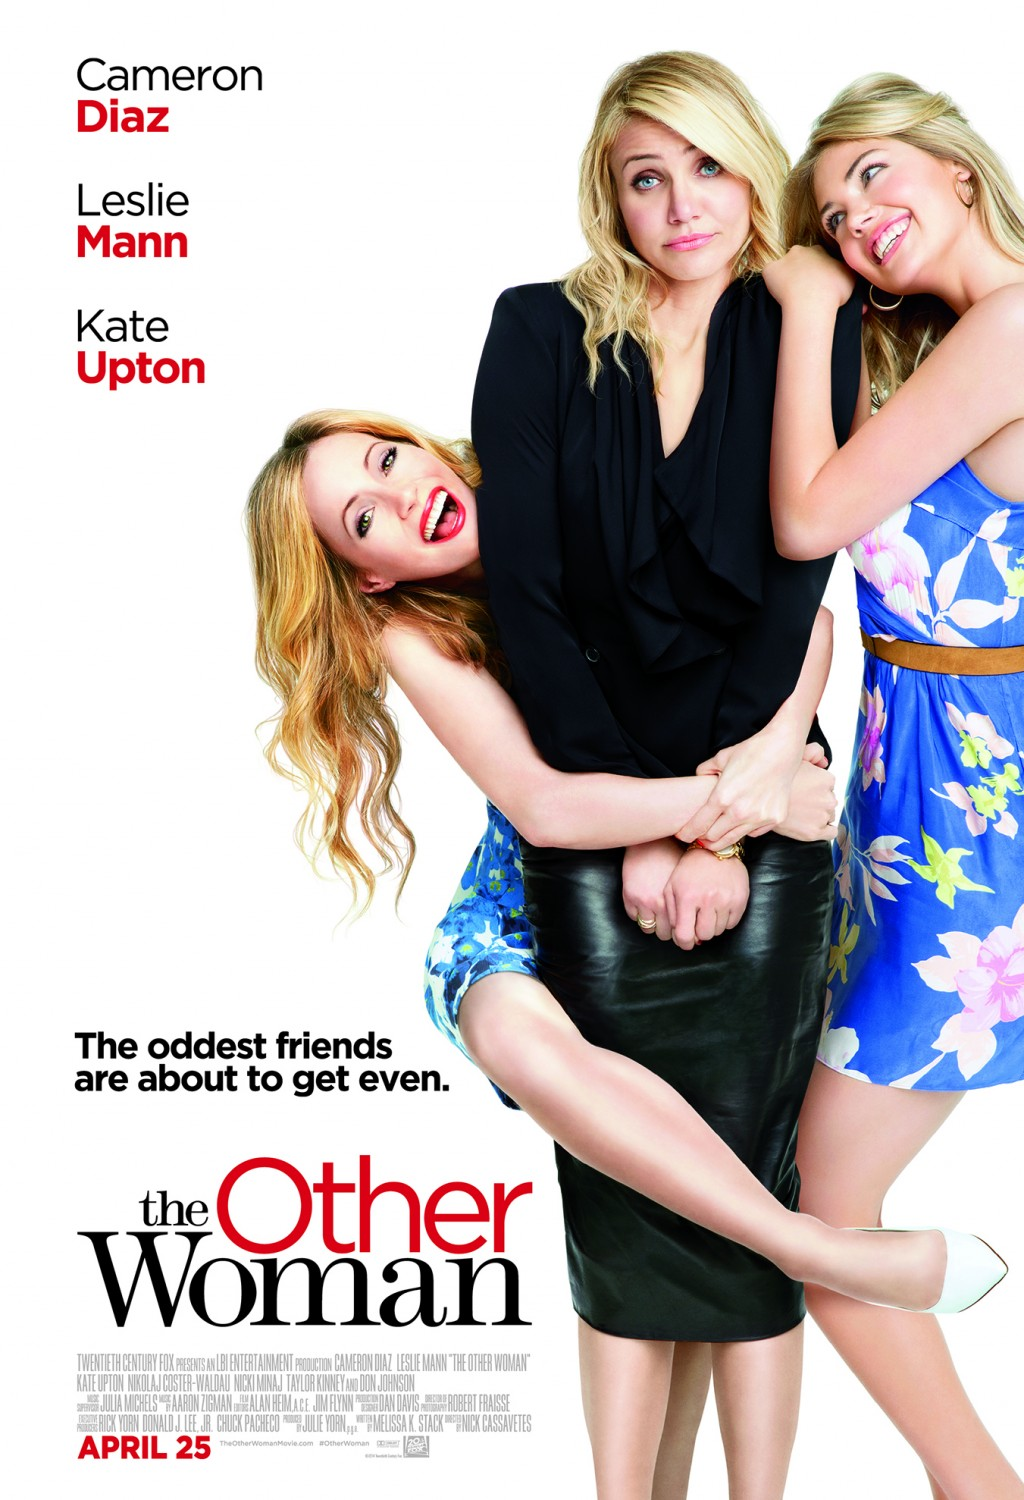 The Other Woman Movie Film 2014 - Sinopsis